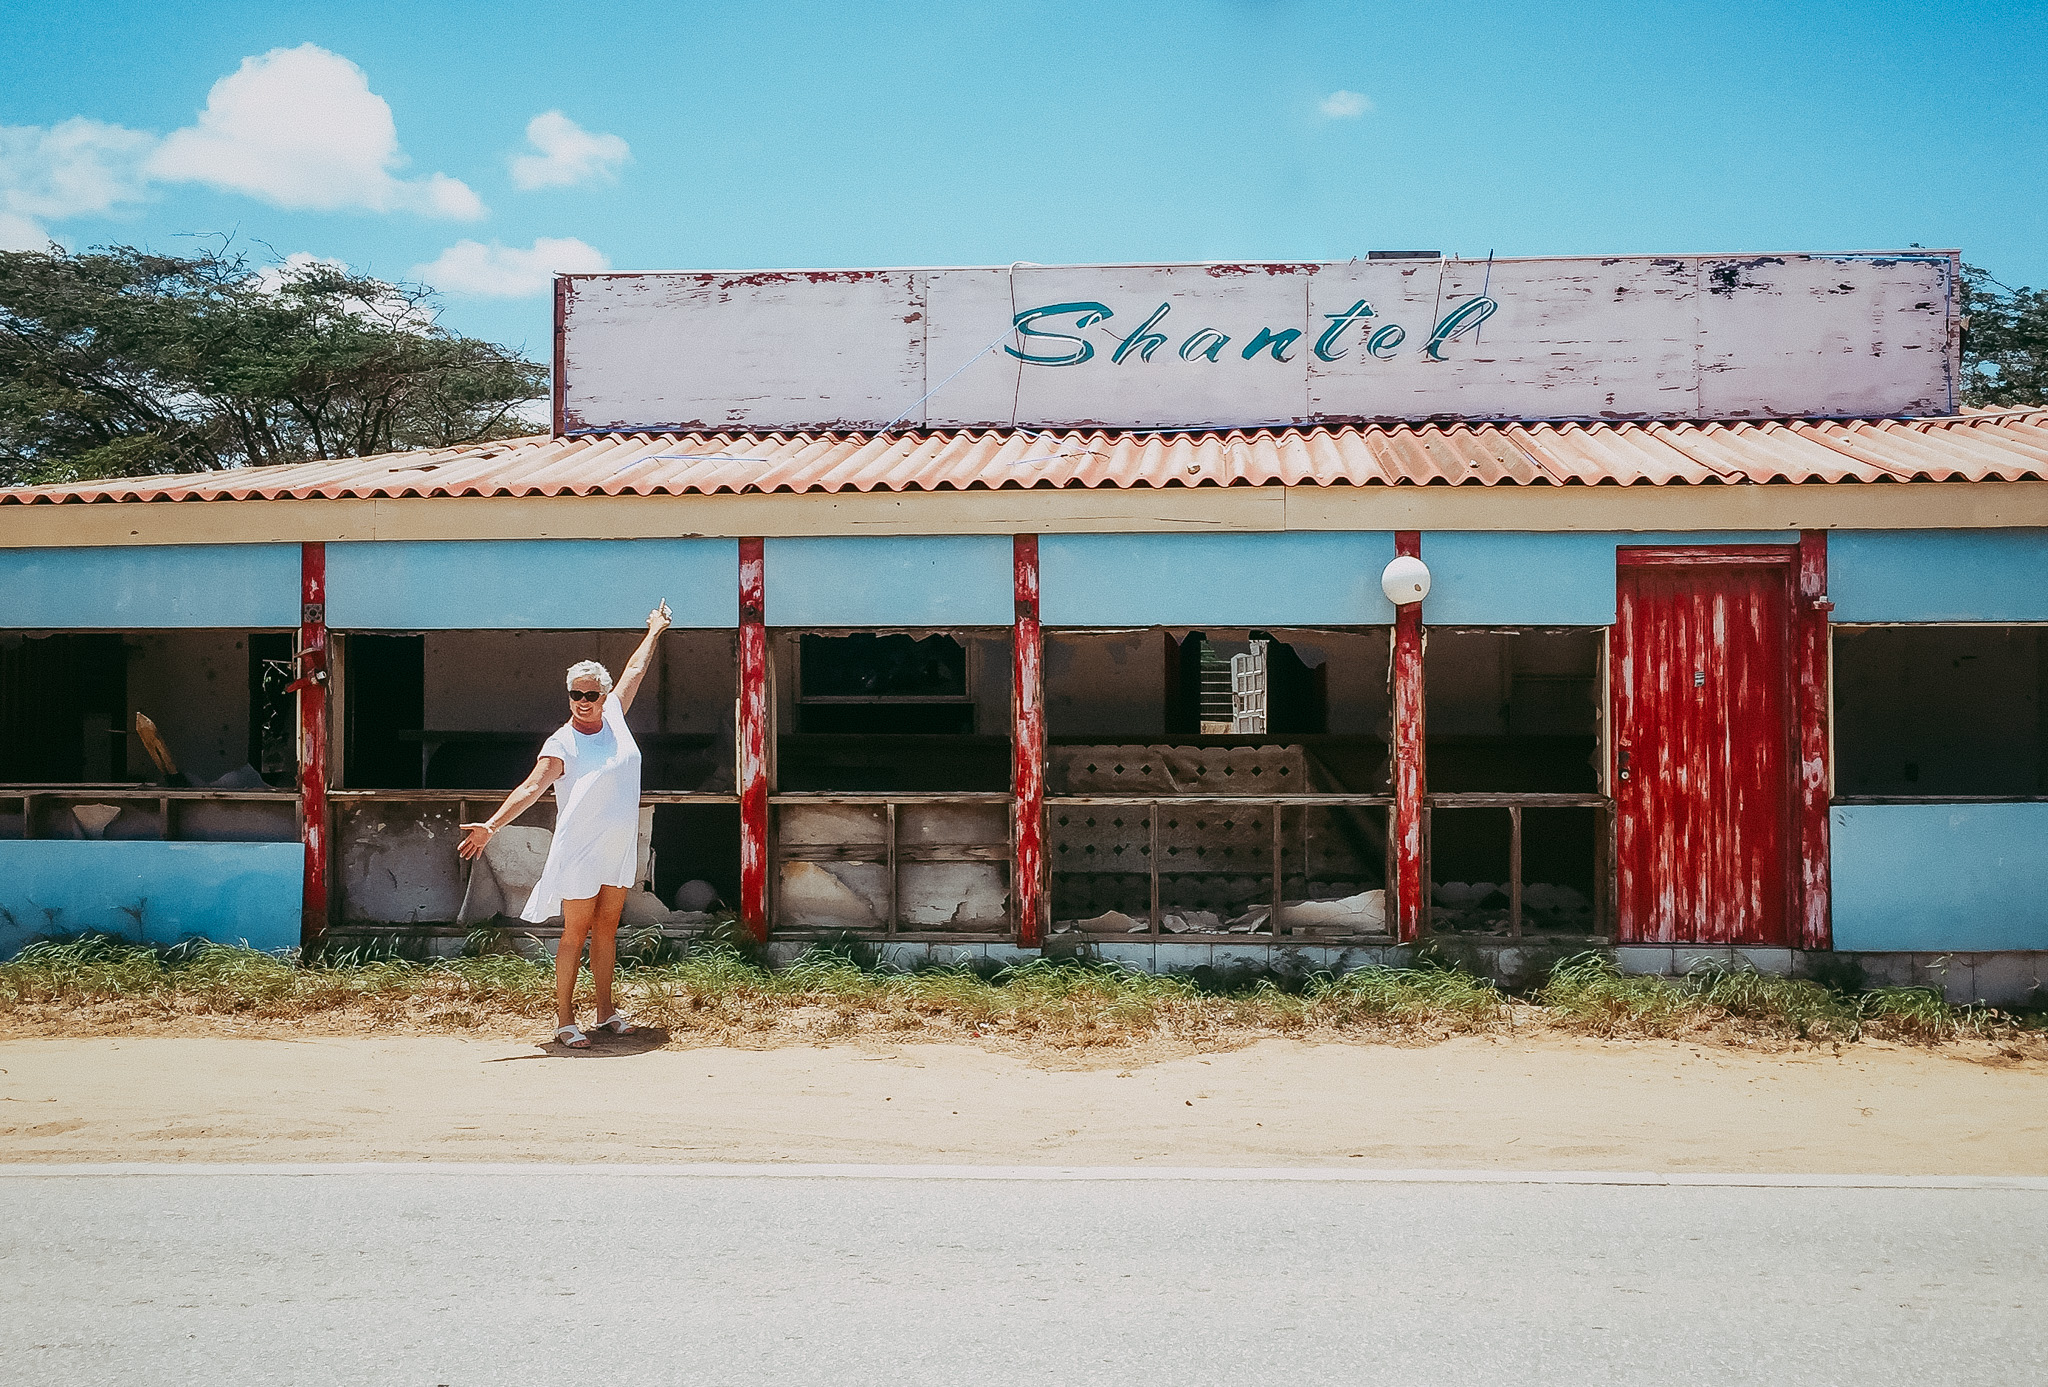 She was so impressed to find her name spelt right - Somewhere in Aruba